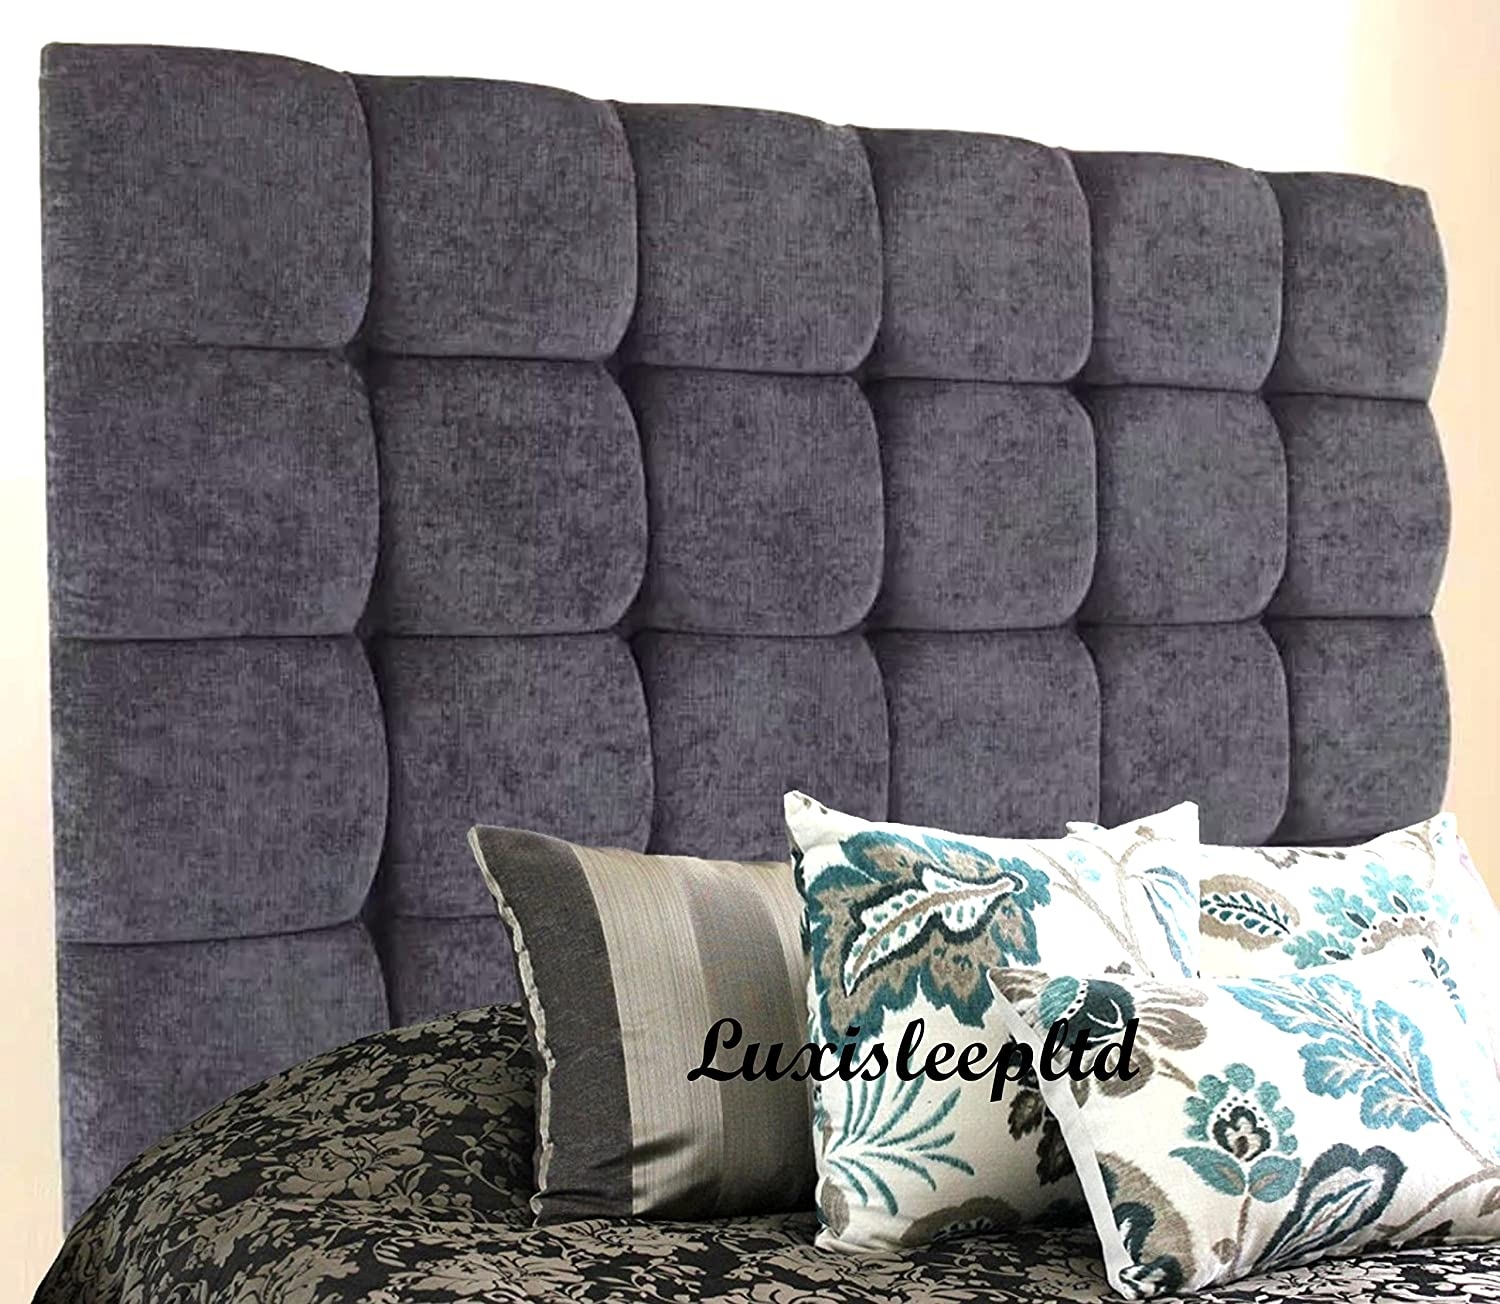 luxisleepltd Top Quality Cube 44 height Wall Mounted Headboard Finished In A Luxury Linen Fabric 3FT, Black Available in Range of Many Colours /& All Sizes,3FT,4FT,4FT6,5FT,6ft